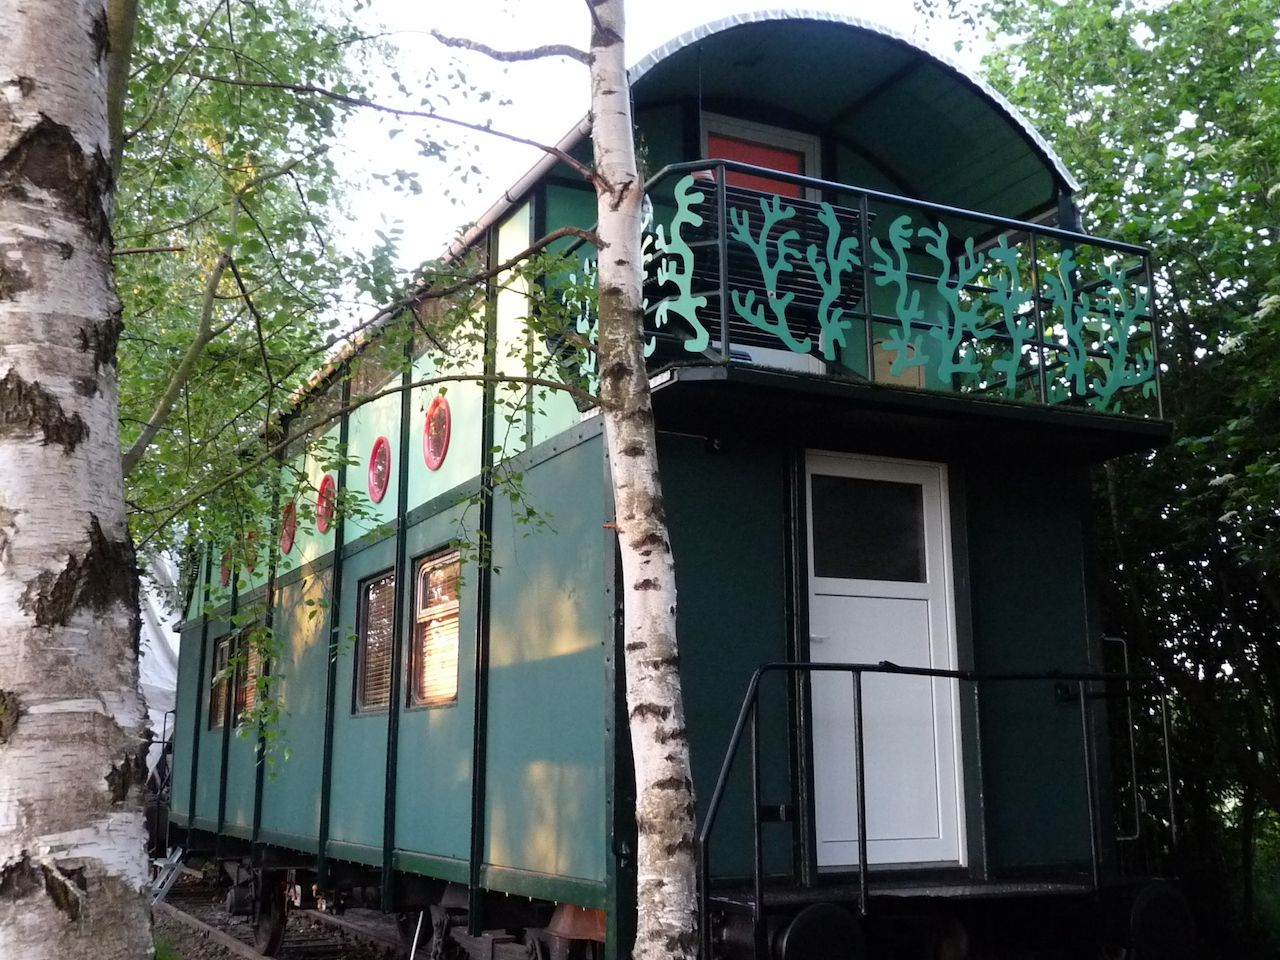 Exterior of a green train cabin converted into an Airbnb